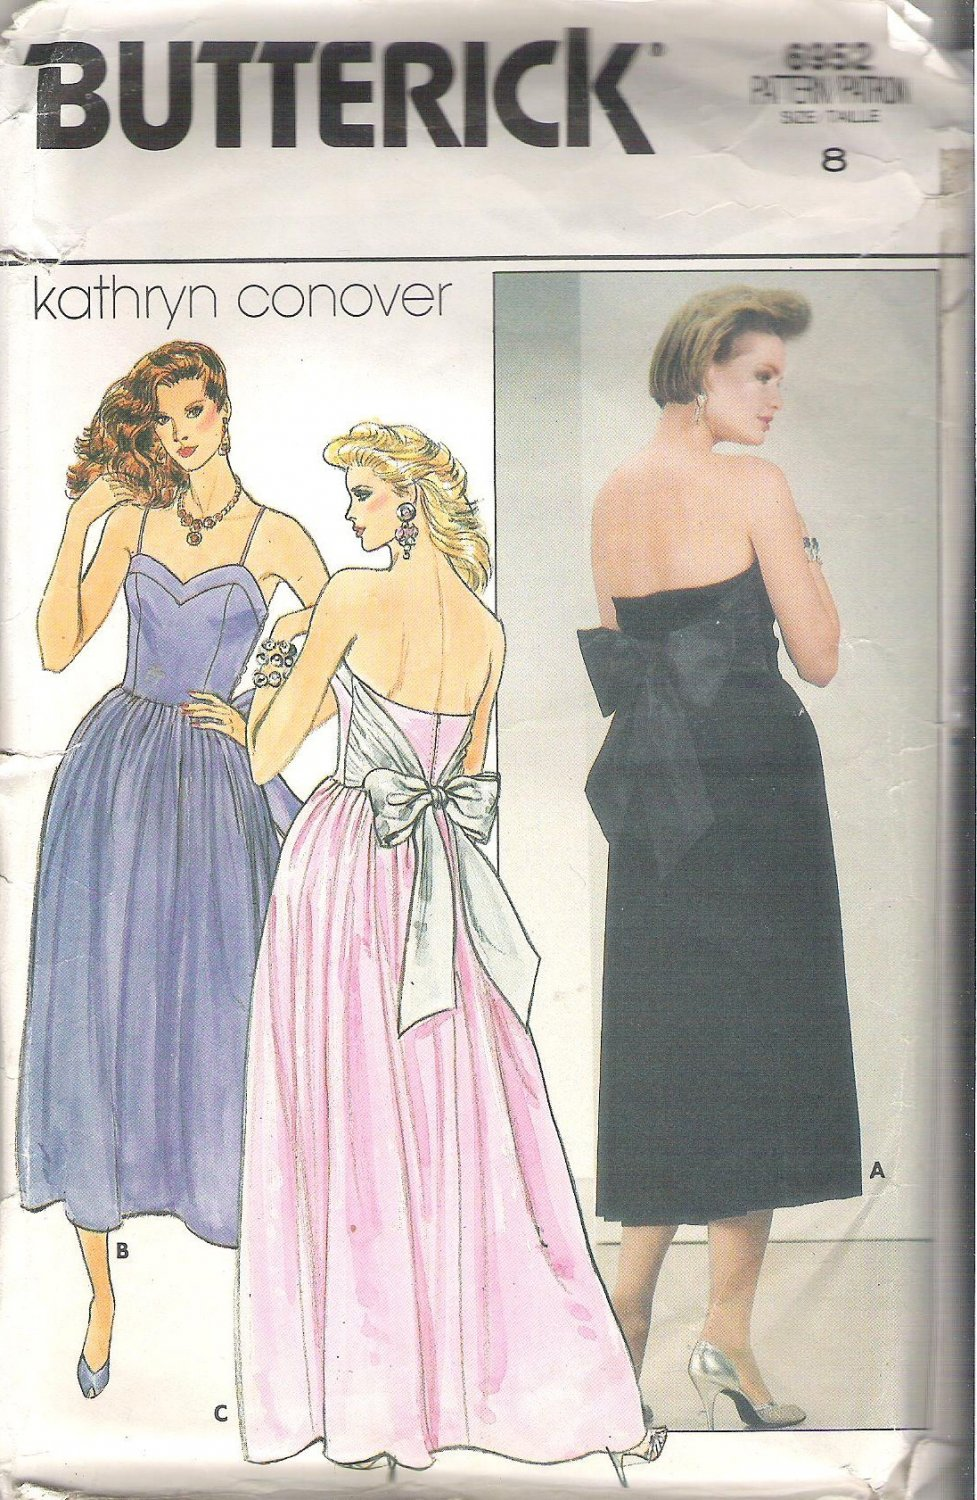 Butterick 6952  Pattern Special Occasion Evening Boned Dress  Size 8  Partial Cut